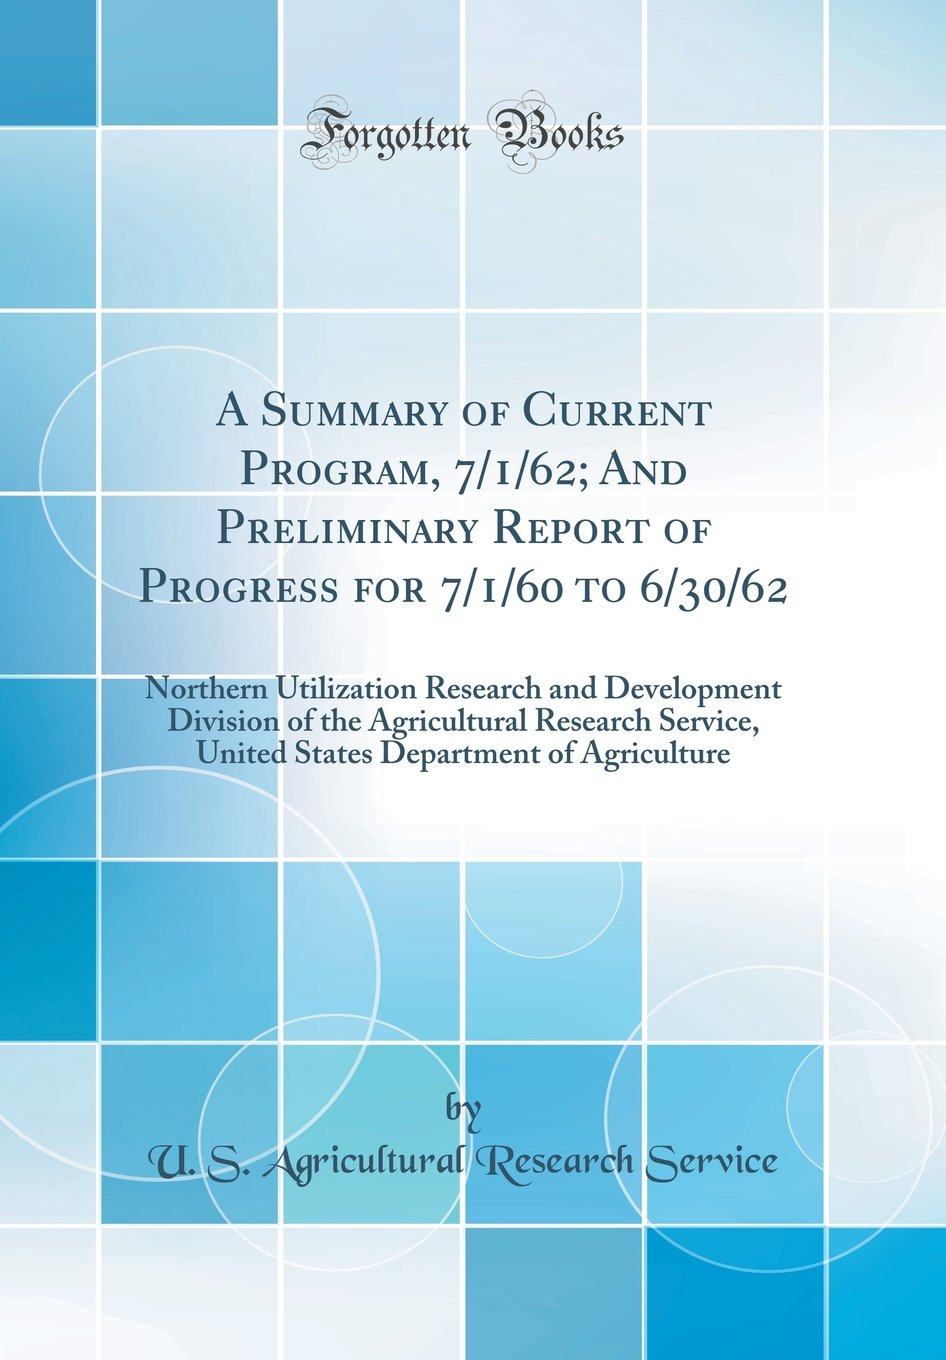 Download A Summary of Current Program, 7/1/62; And Preliminary Report of Progress for 7/1/60 to 6/30/62: Northern Utilization Research and Development Division ... Department of Agriculture (Classic Reprint) pdf